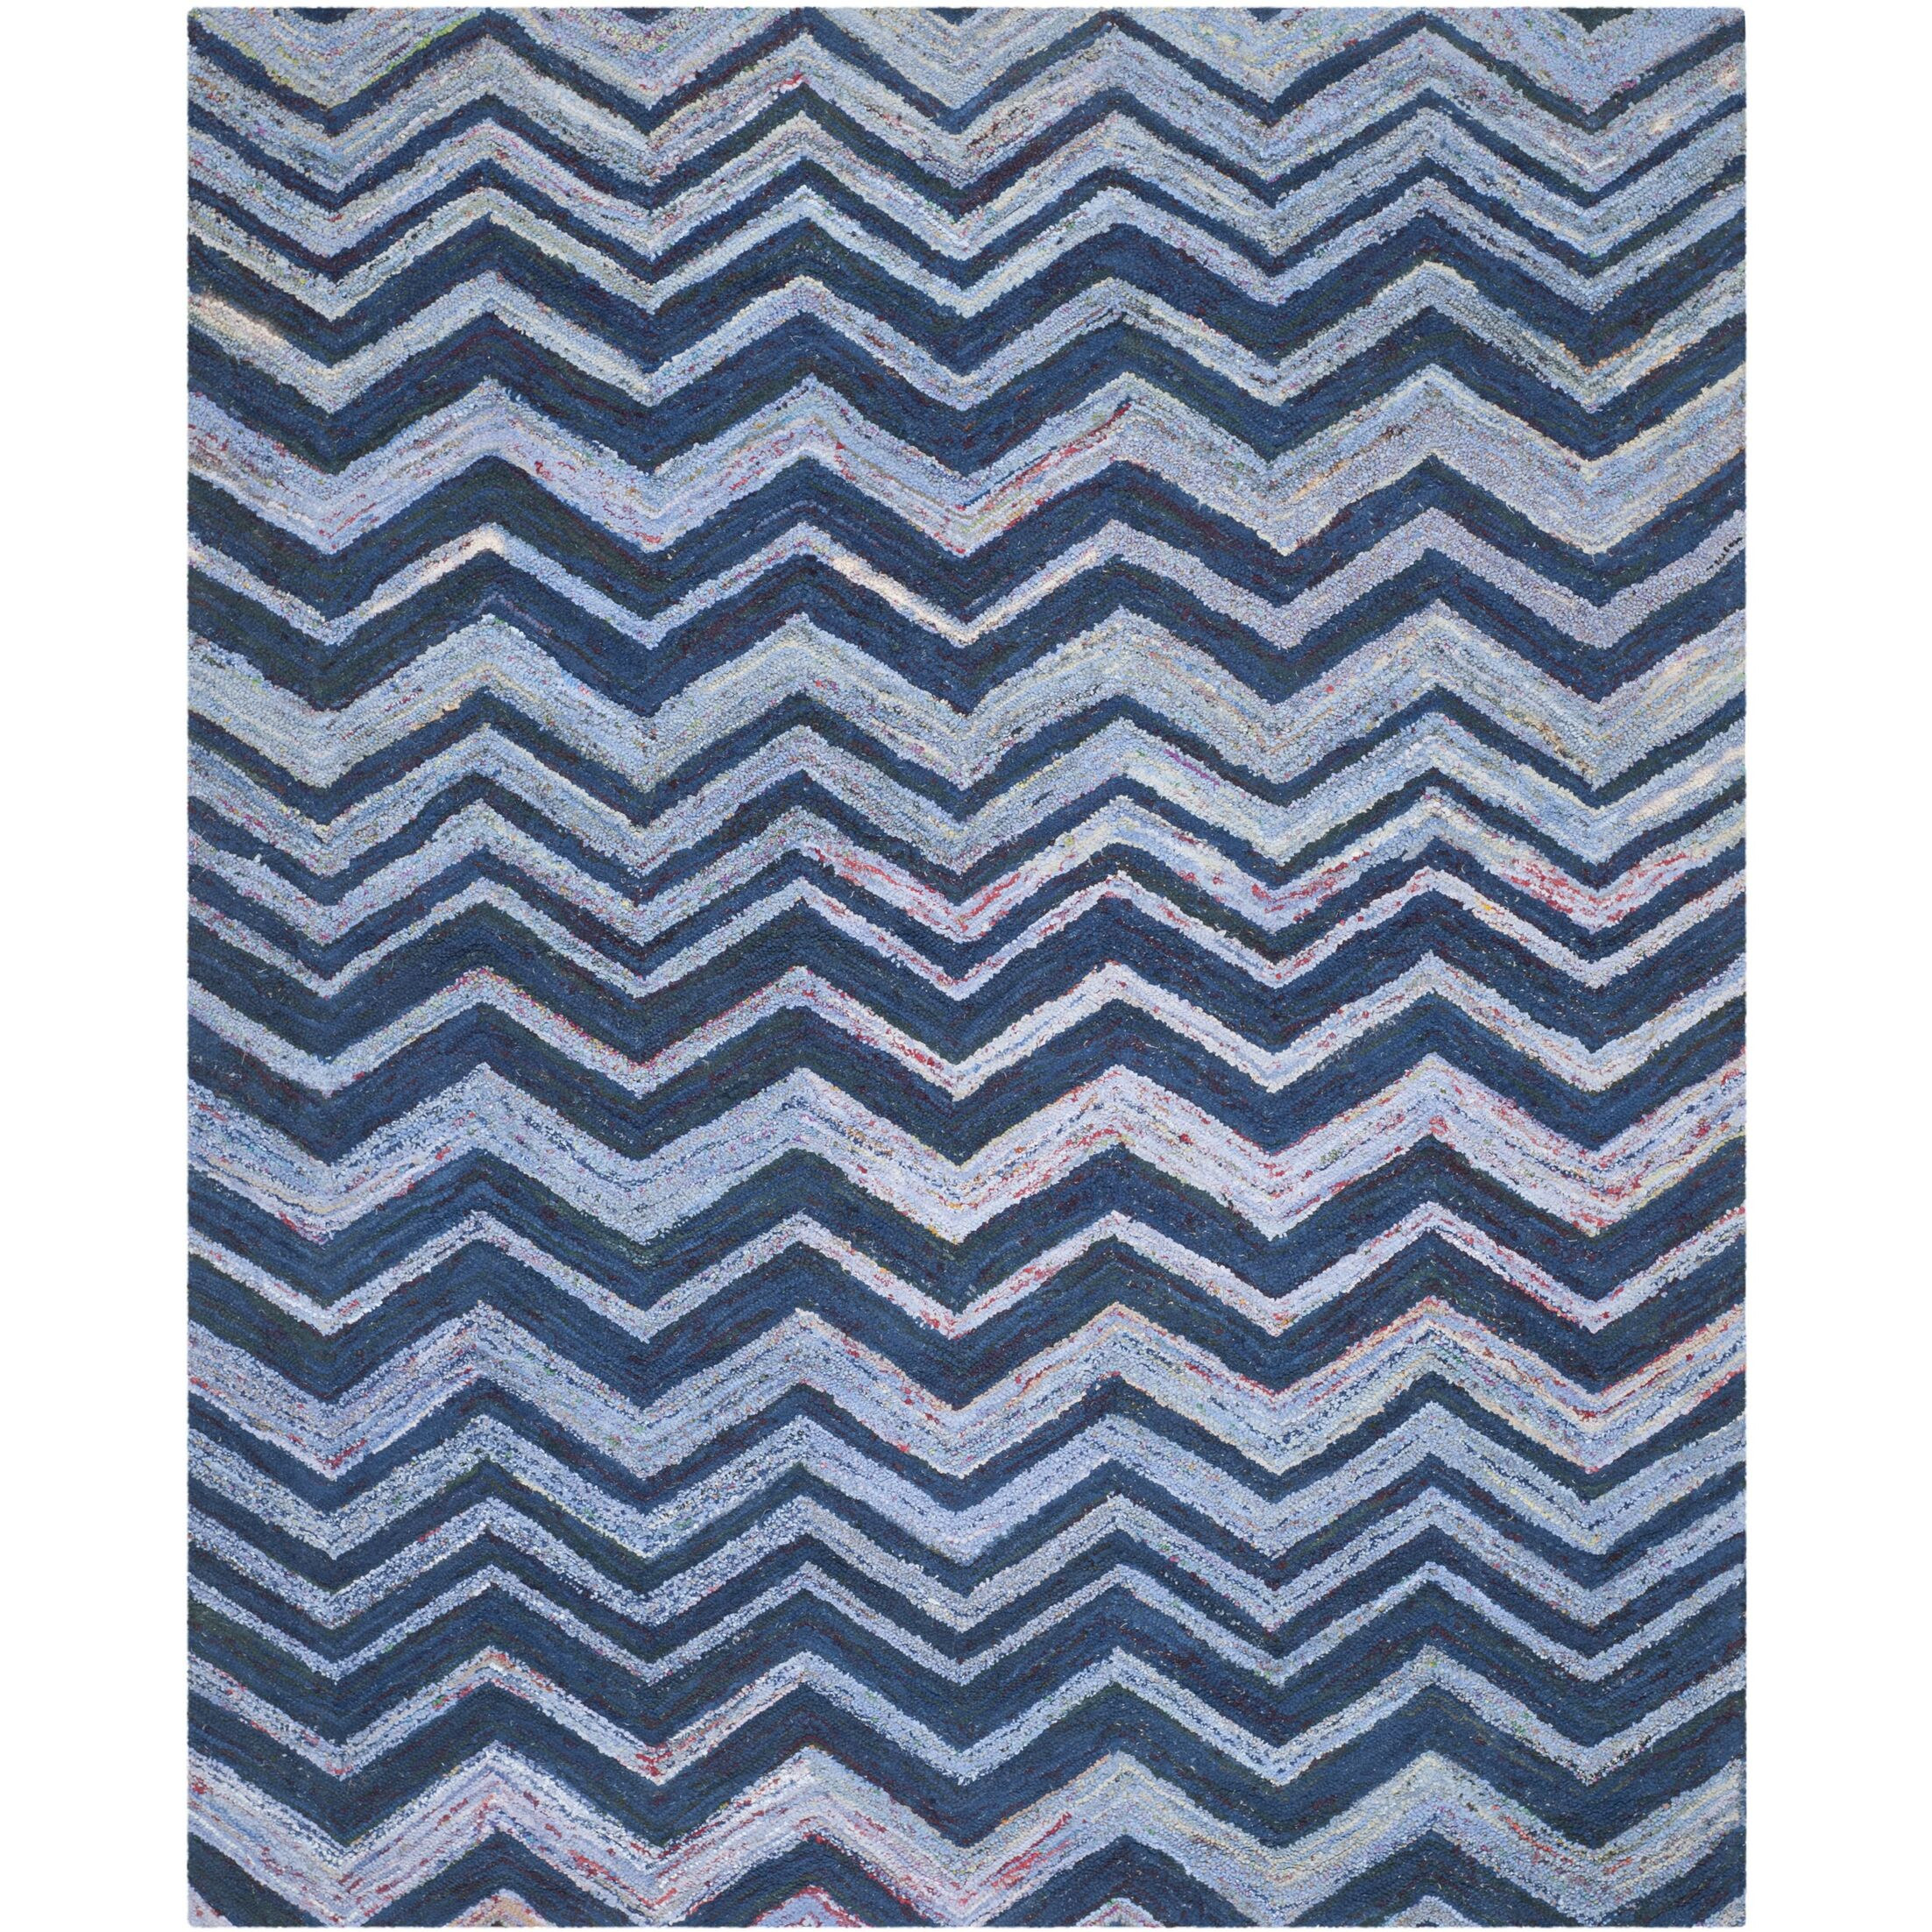 Anaheim Hand-Woven Cotton Blue Area Rug Rug Size: Rectangle 8' x 10'